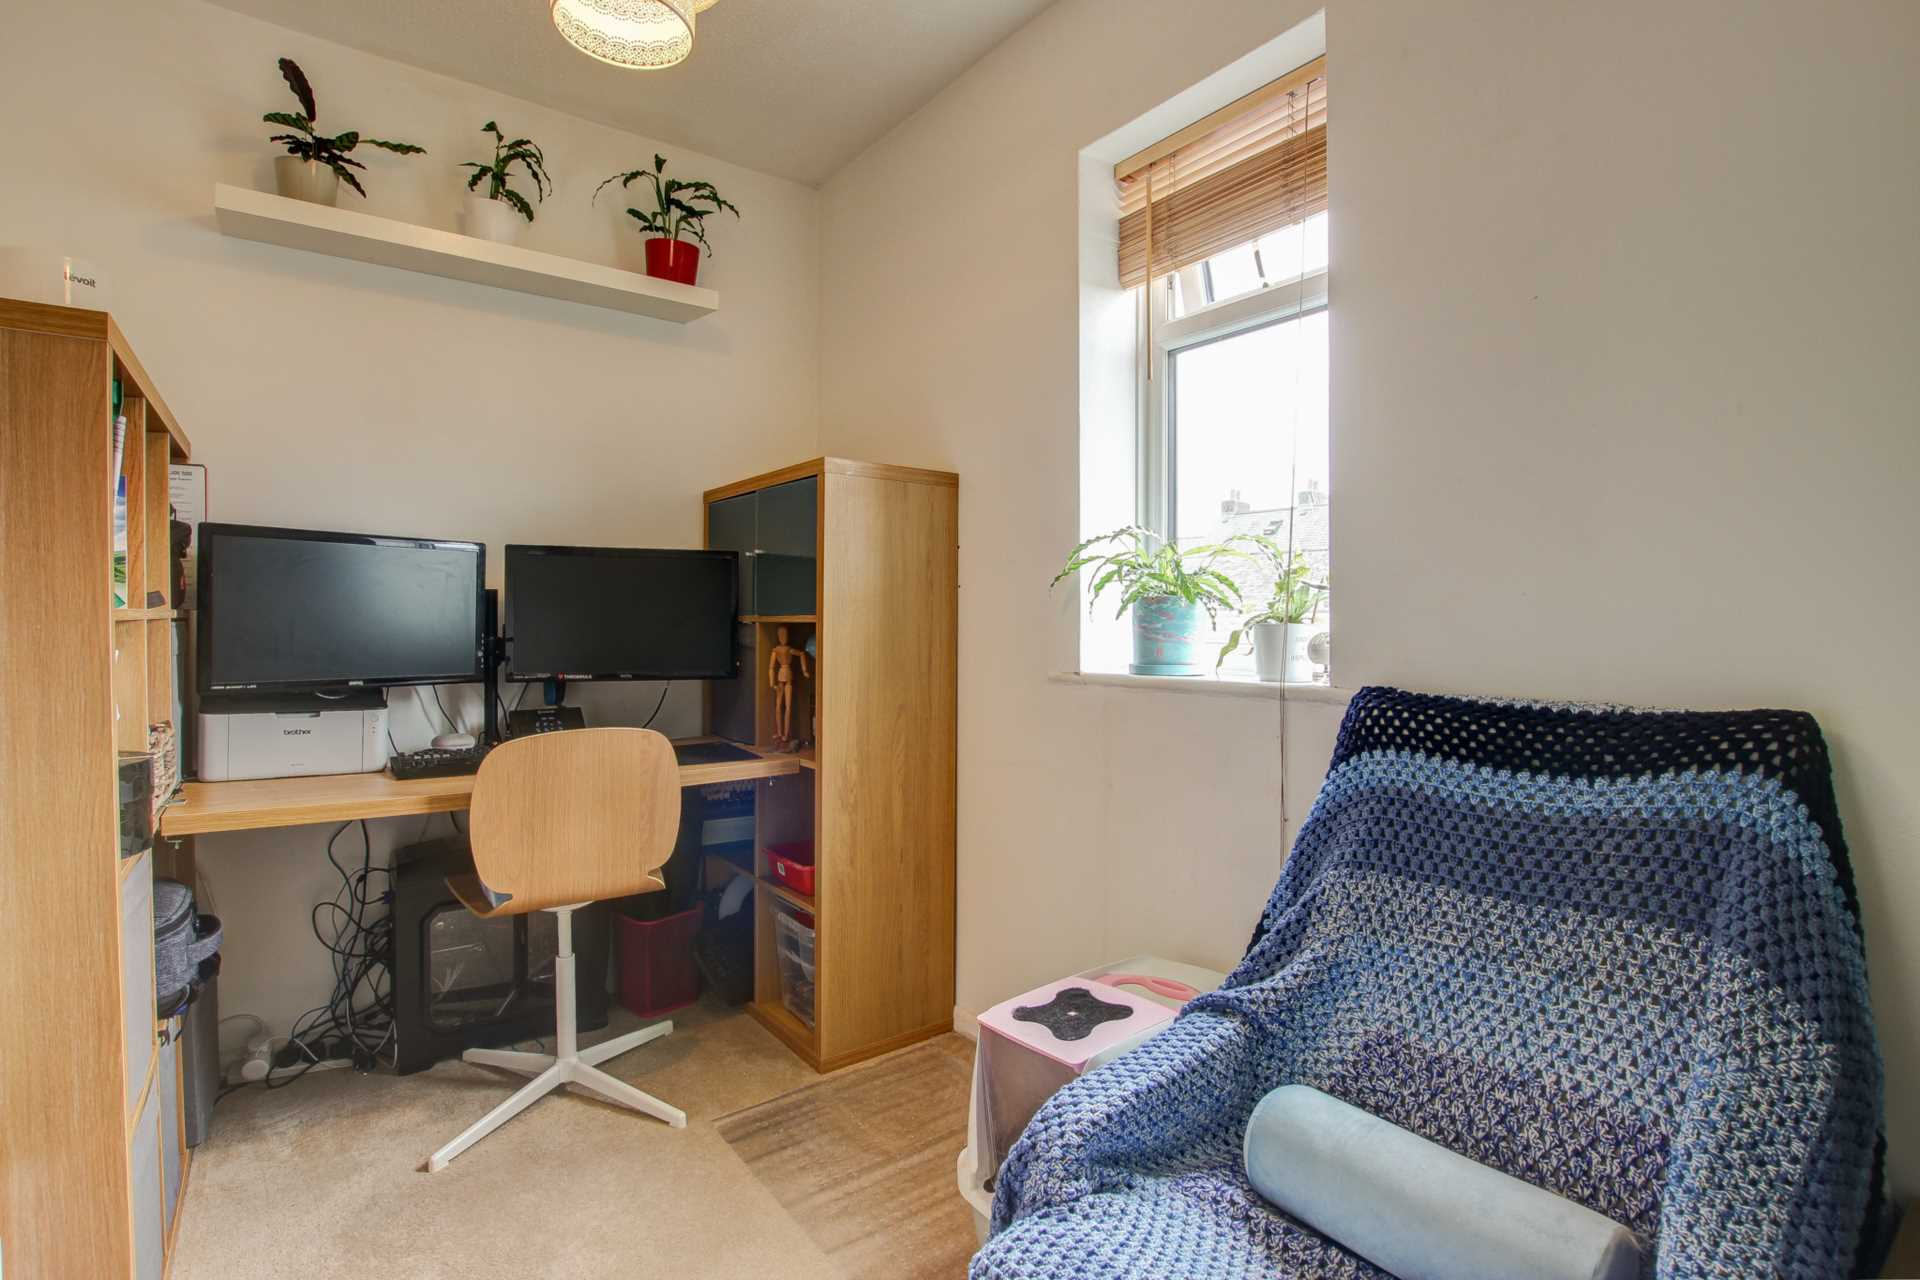 2 bed end of terrace house for sale in The Mews, Shorts Lane, Blandford Forum, Blandford Forum 5